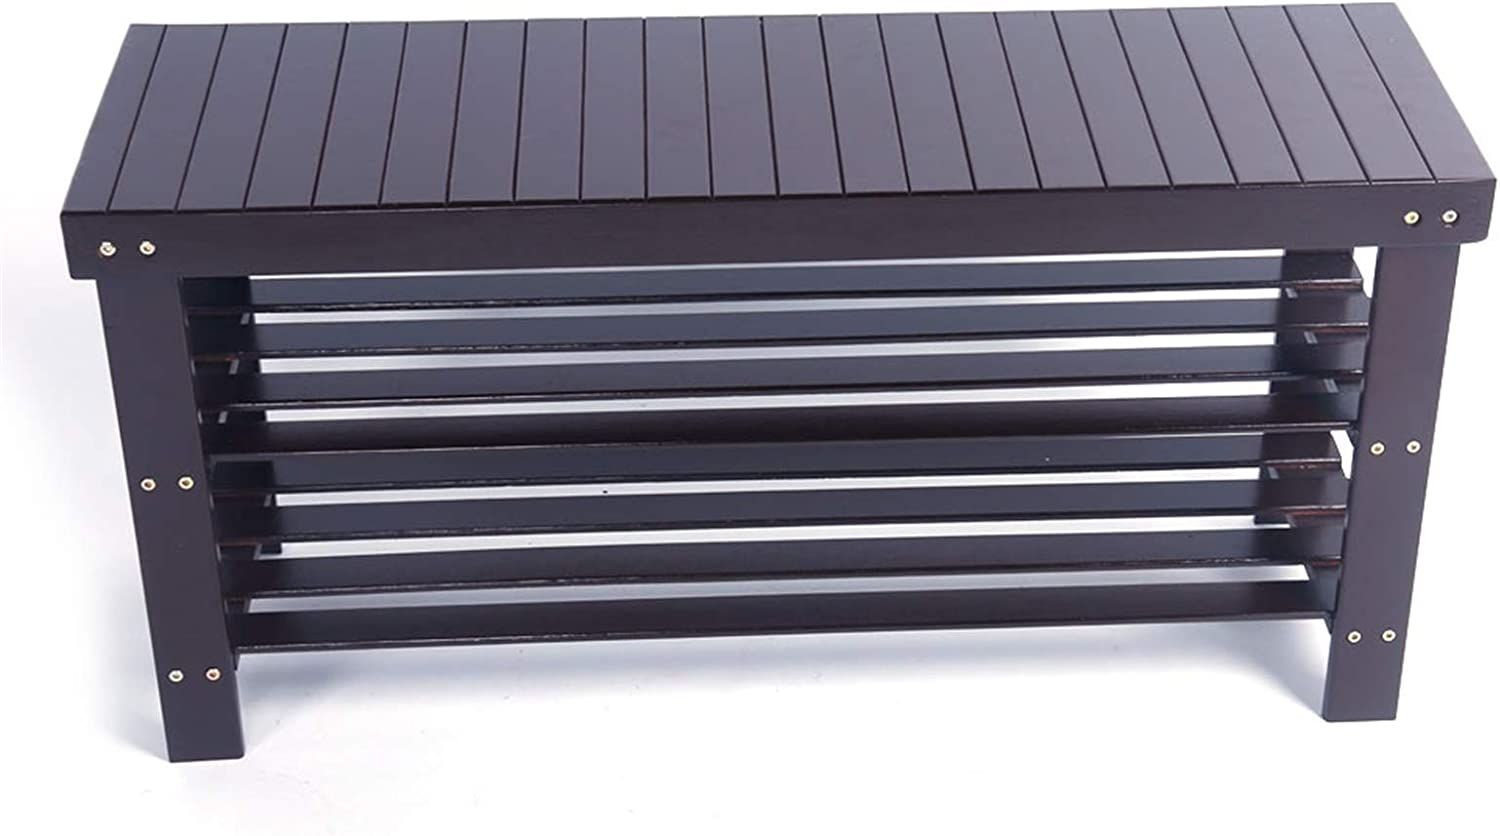 Trlec gt4-ly Fine workmanship 90cm Max 85% OFF Tiers Strip Popular brand in the world 3 Bamboo Pattern